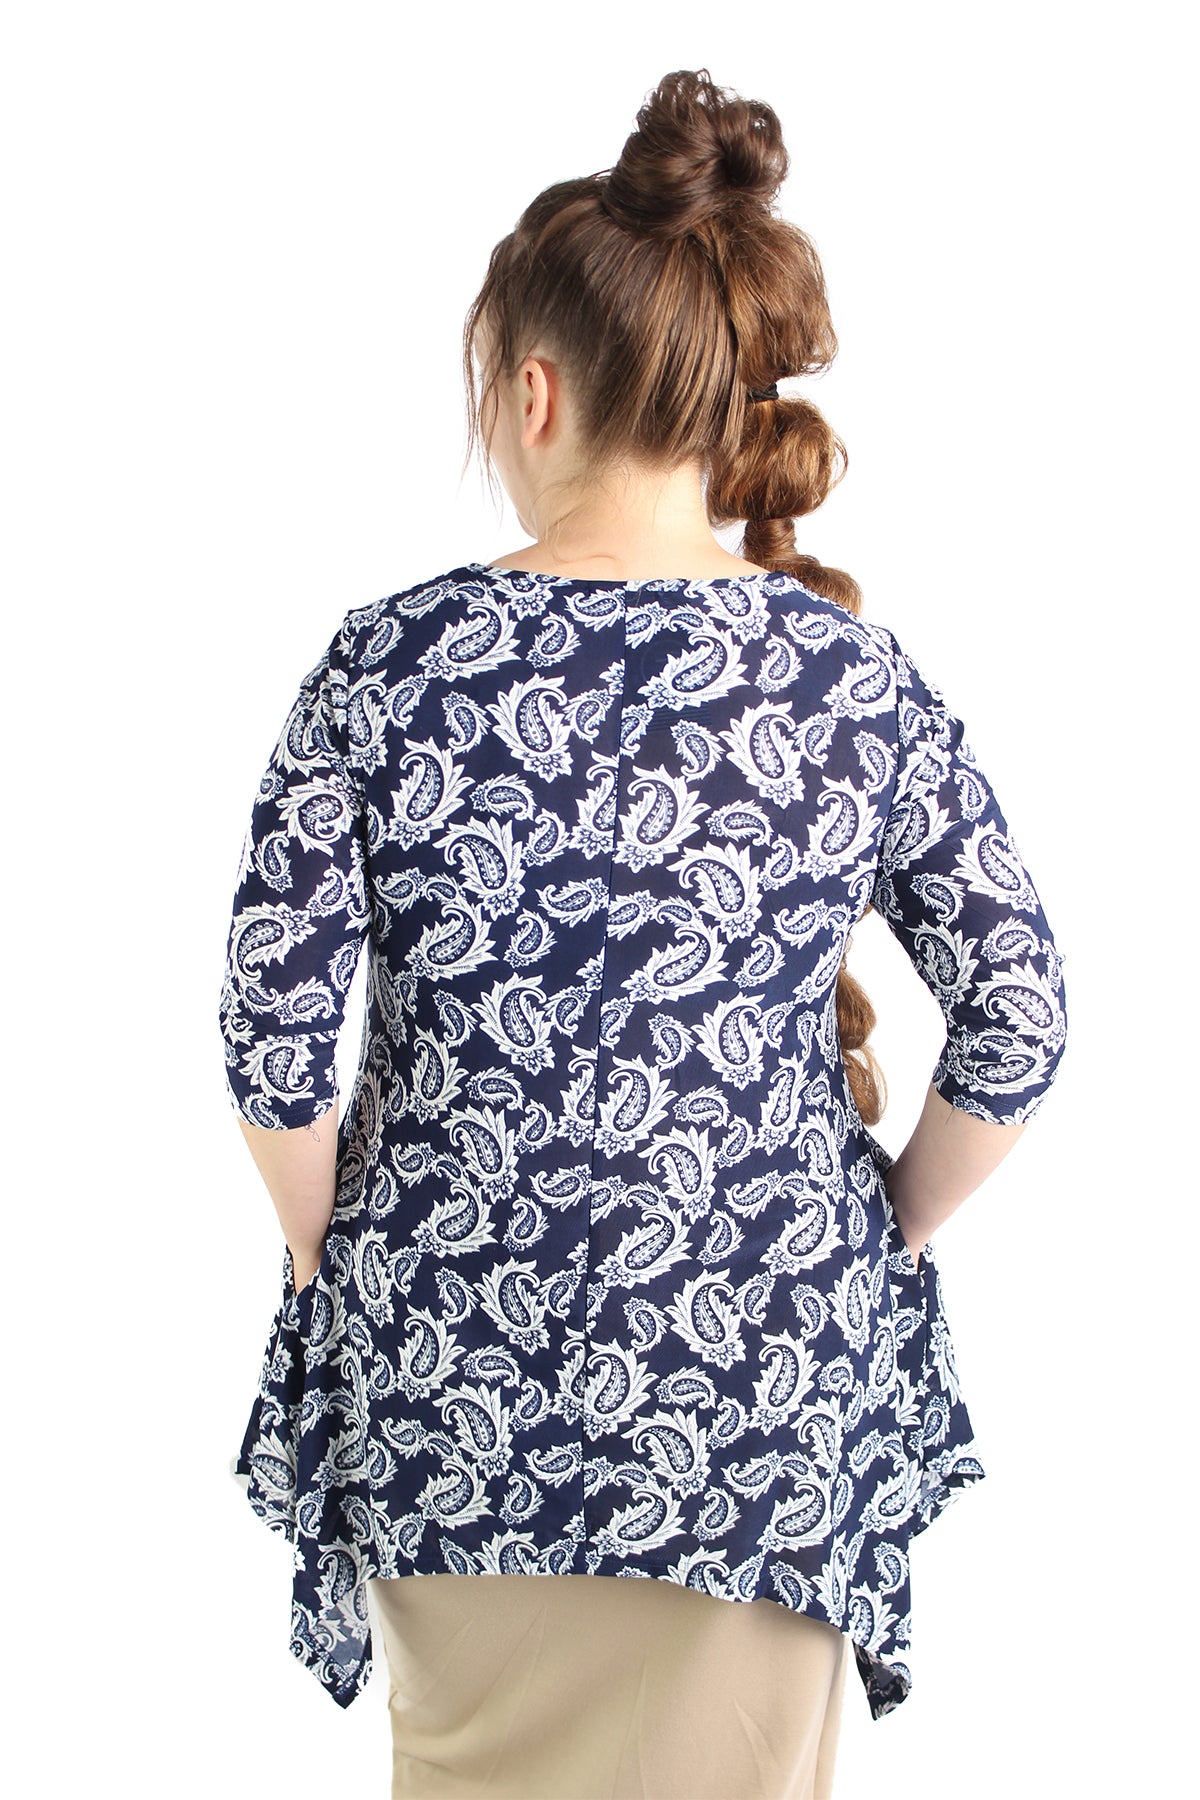 modest tunic shirt pockets navy paisley